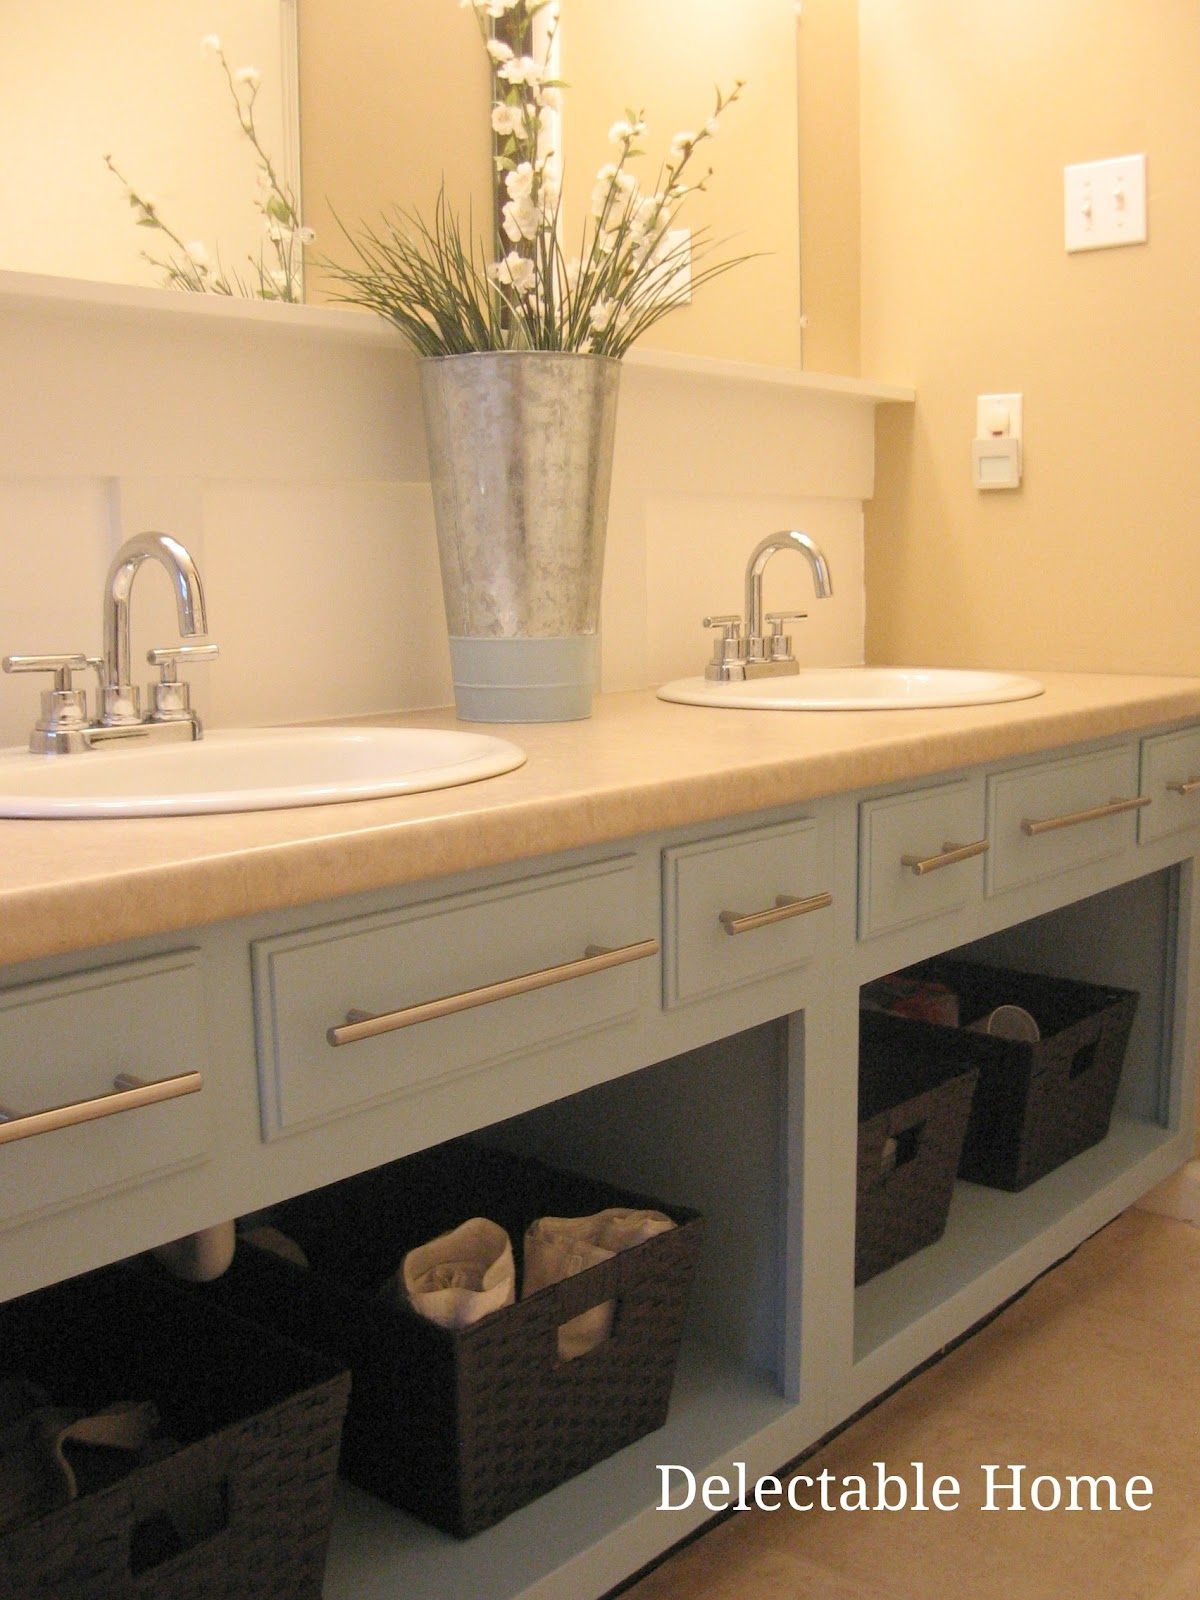 The Delectable Home Turquoise Bathroom Sink